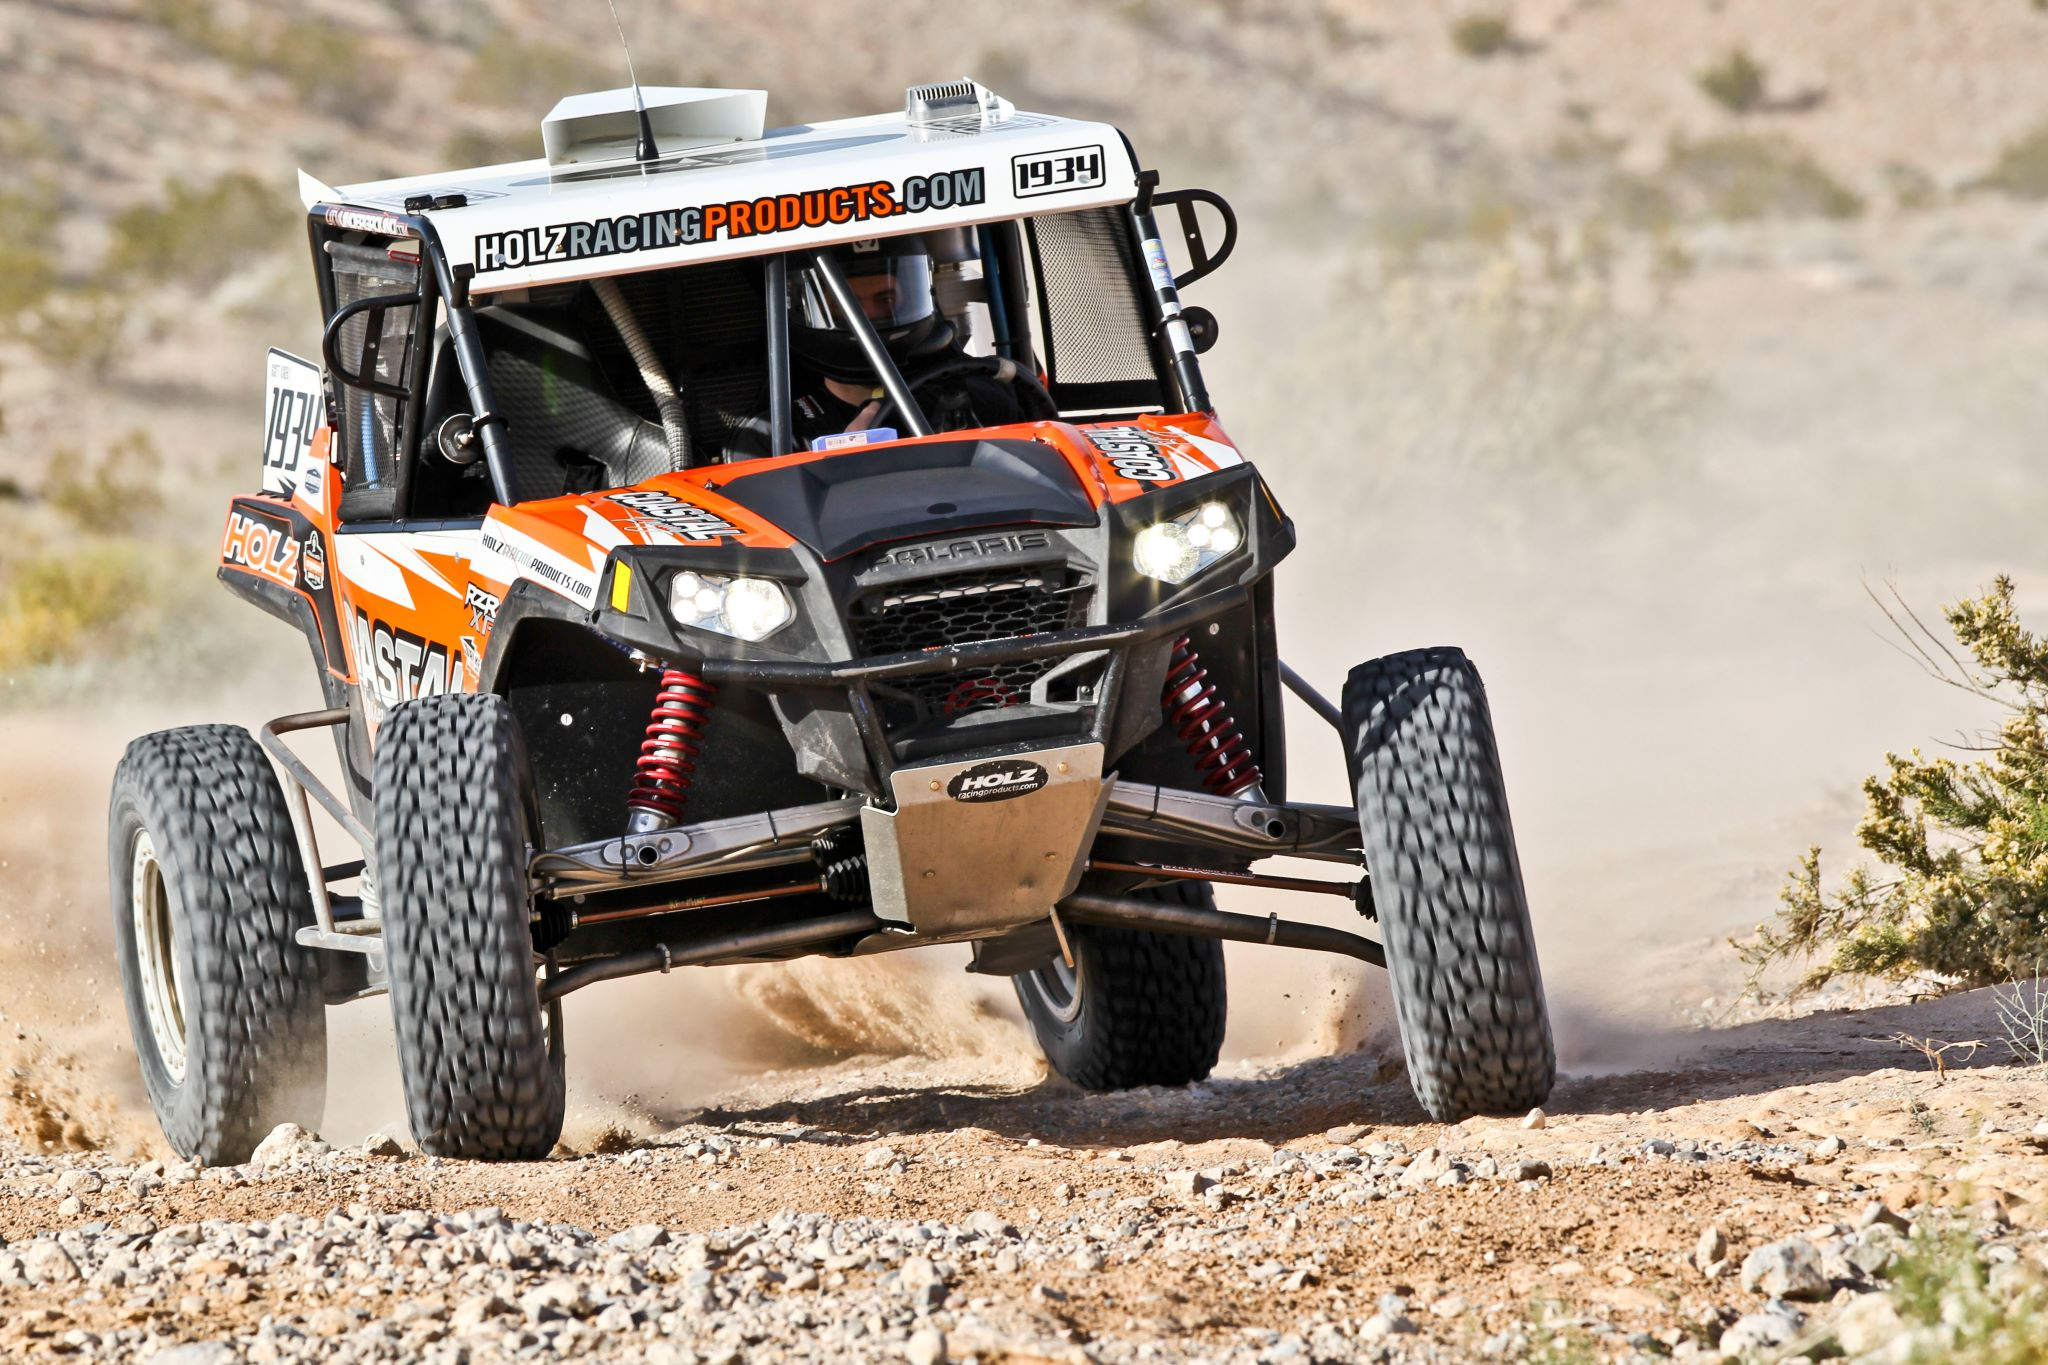 Holz/Coastal Racing Polaris RZR XP 900